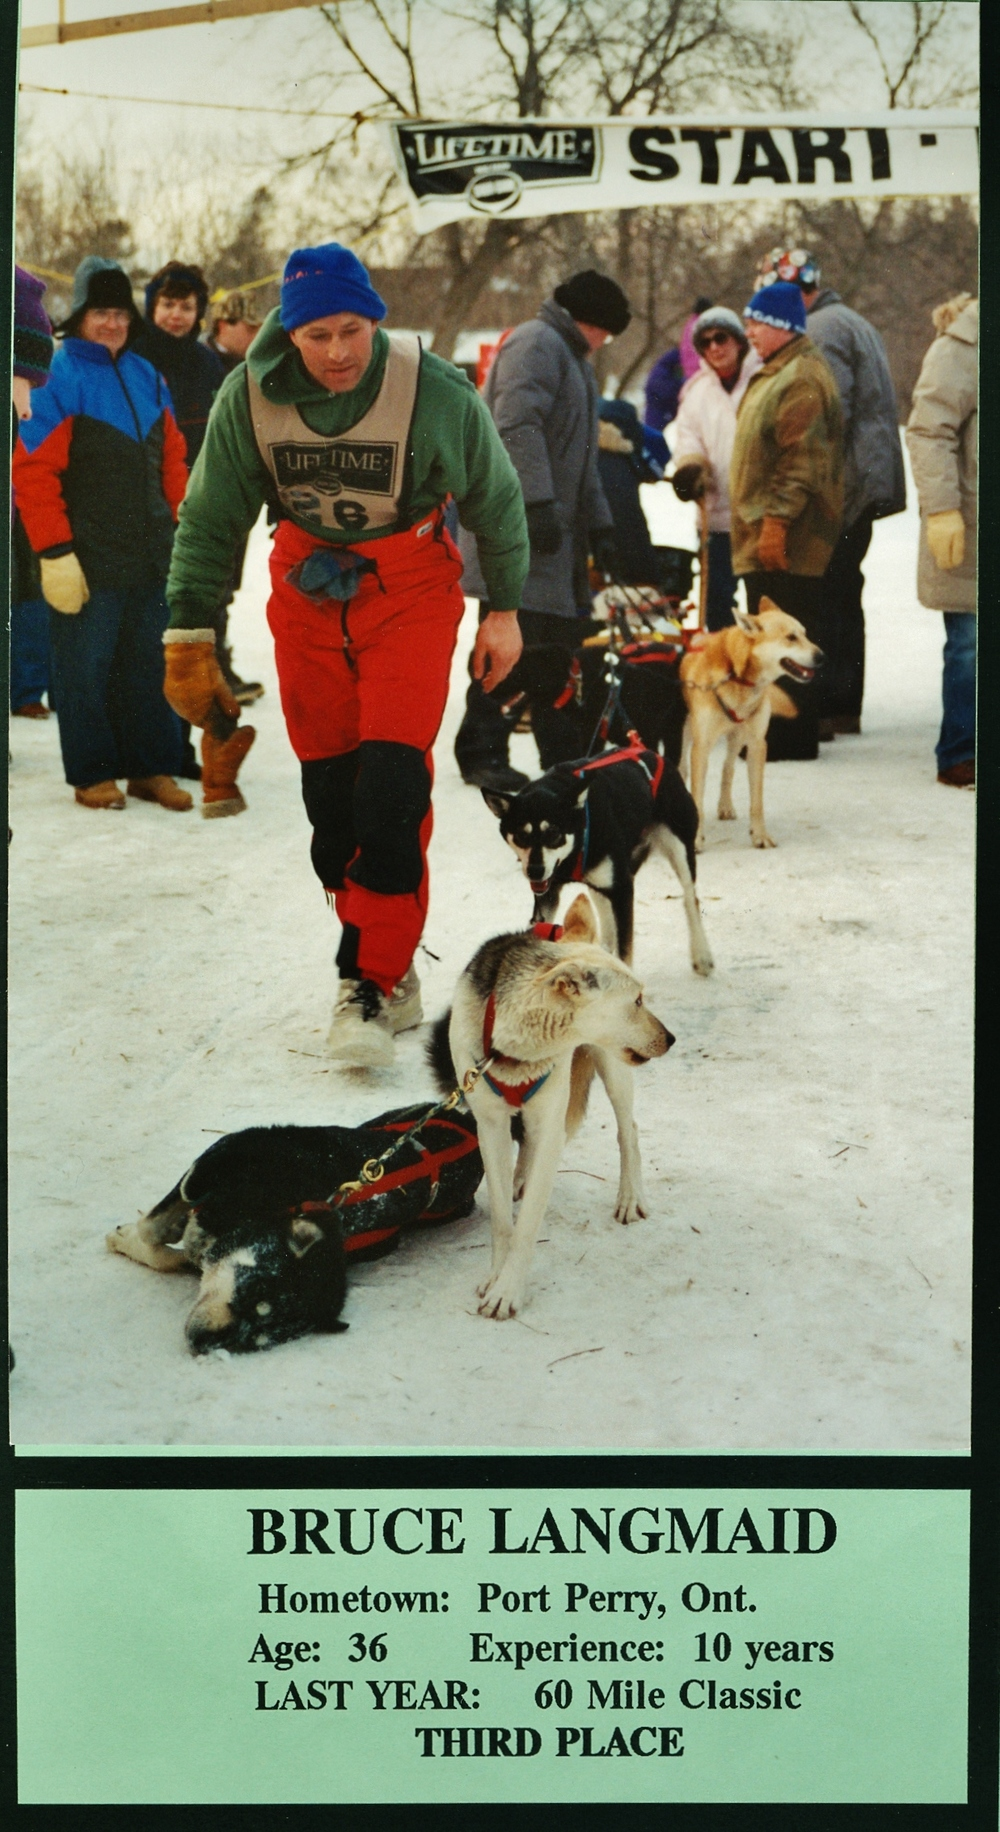 Snofest 1994 Bruce Langmaid,  Port Perry Ont,,  3rd place 60 mile,  1995 Marmora Cup winner.jpg